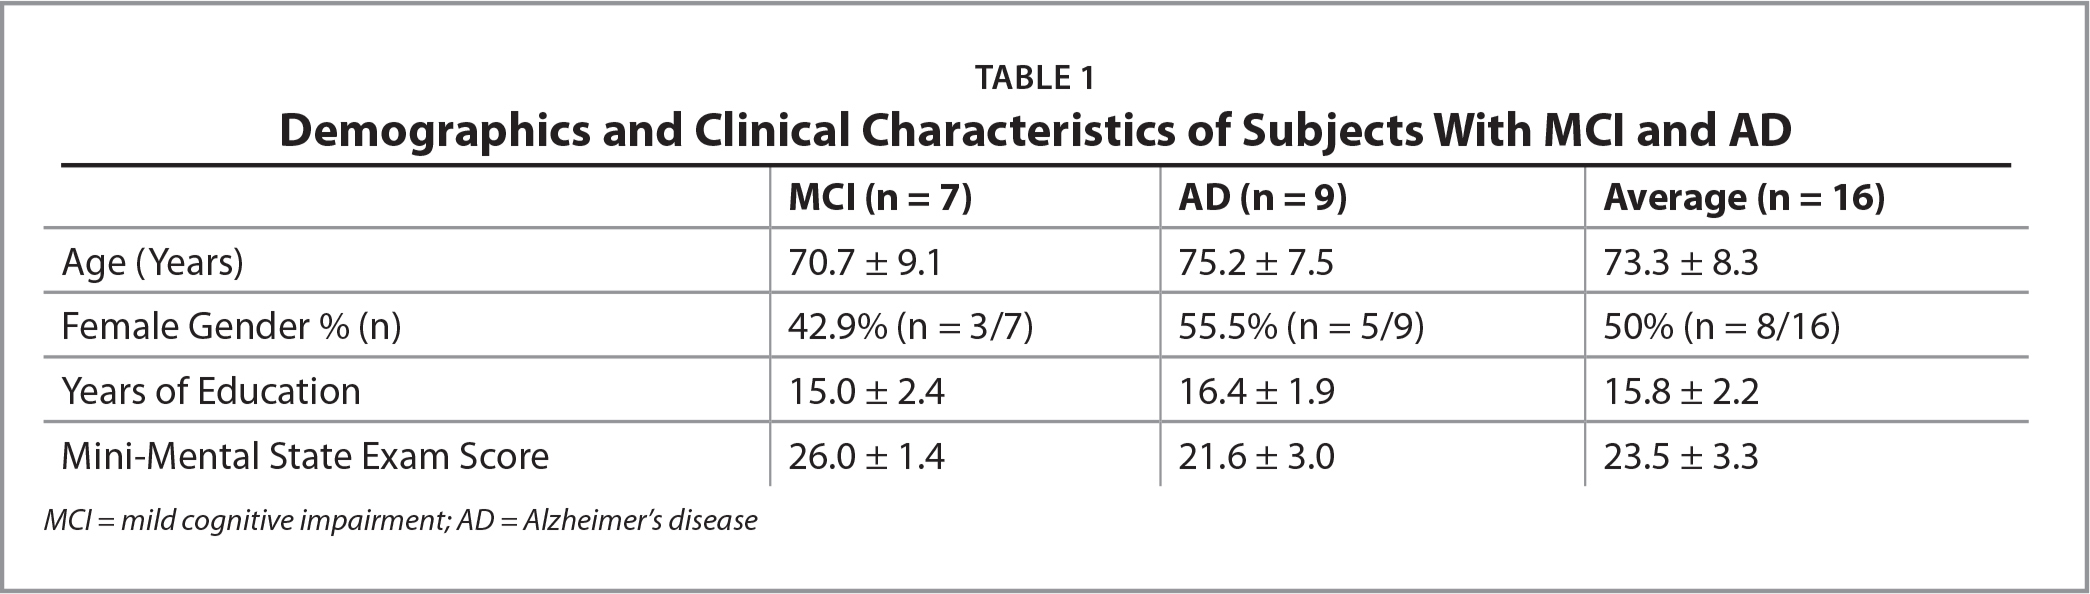 Demographics and Clinical Characteristics of Subjects With MCI and AD